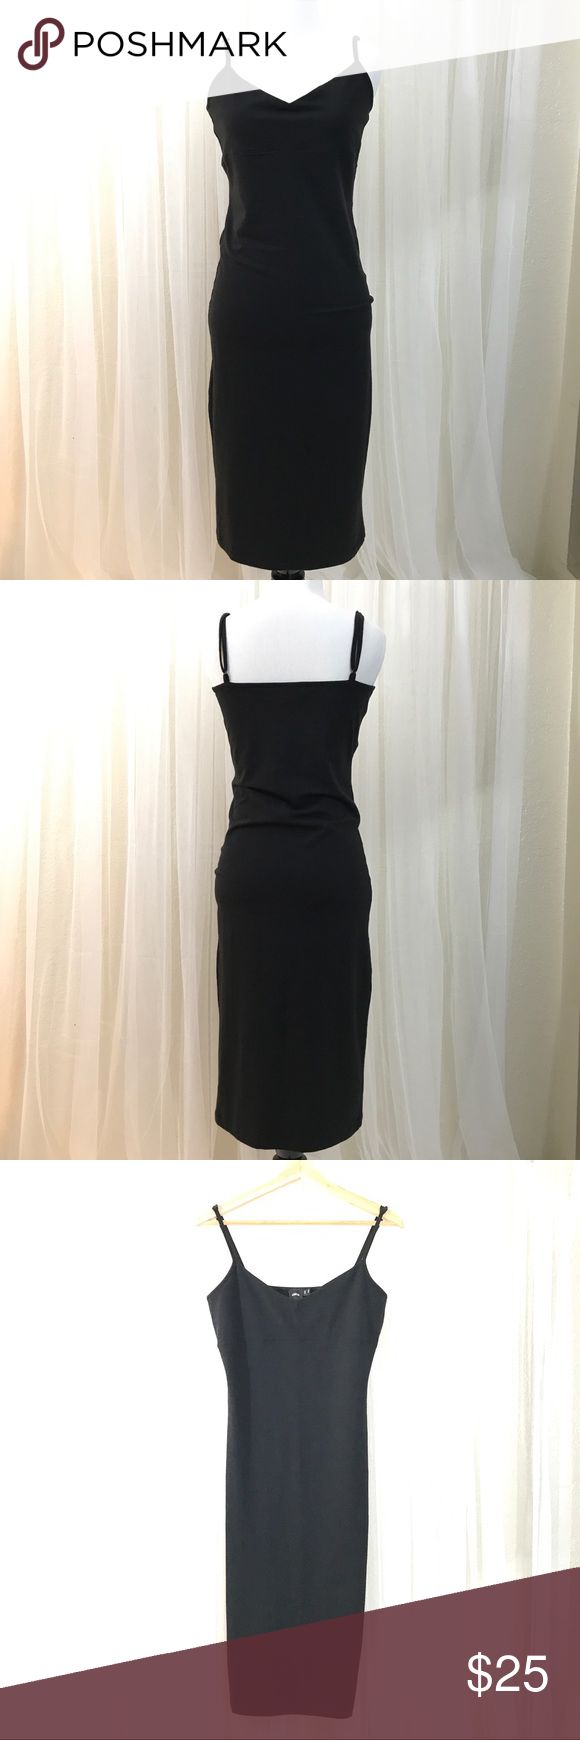 Asos Spaghetti Strap Bodycon Midi Dress Like new condition.  Adjustable straps.  Stretchy, comfy and sexy, fitted knee length pullover dress.  Mannequin is a size 2/4 so it's slightly loose on her. ASOS Dresses Midi